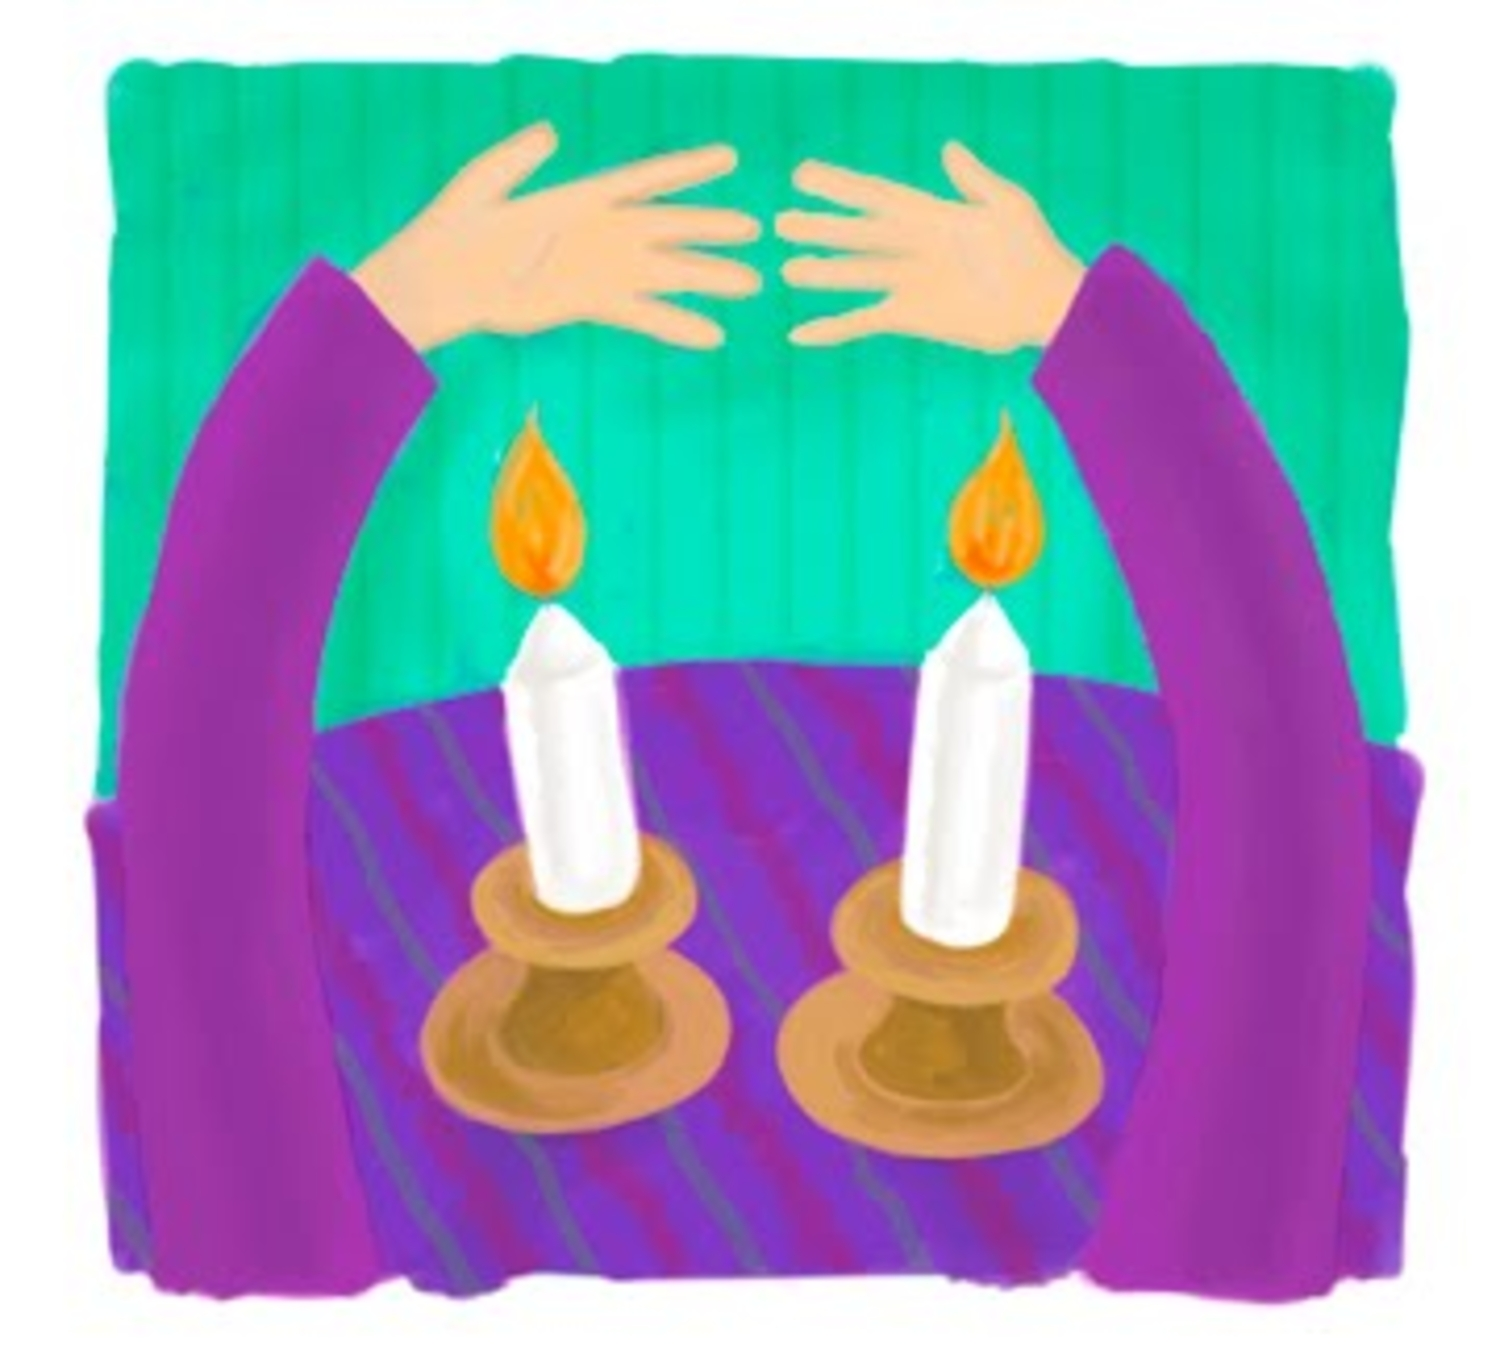 Shabbat Candles Clipart Viewing free image.